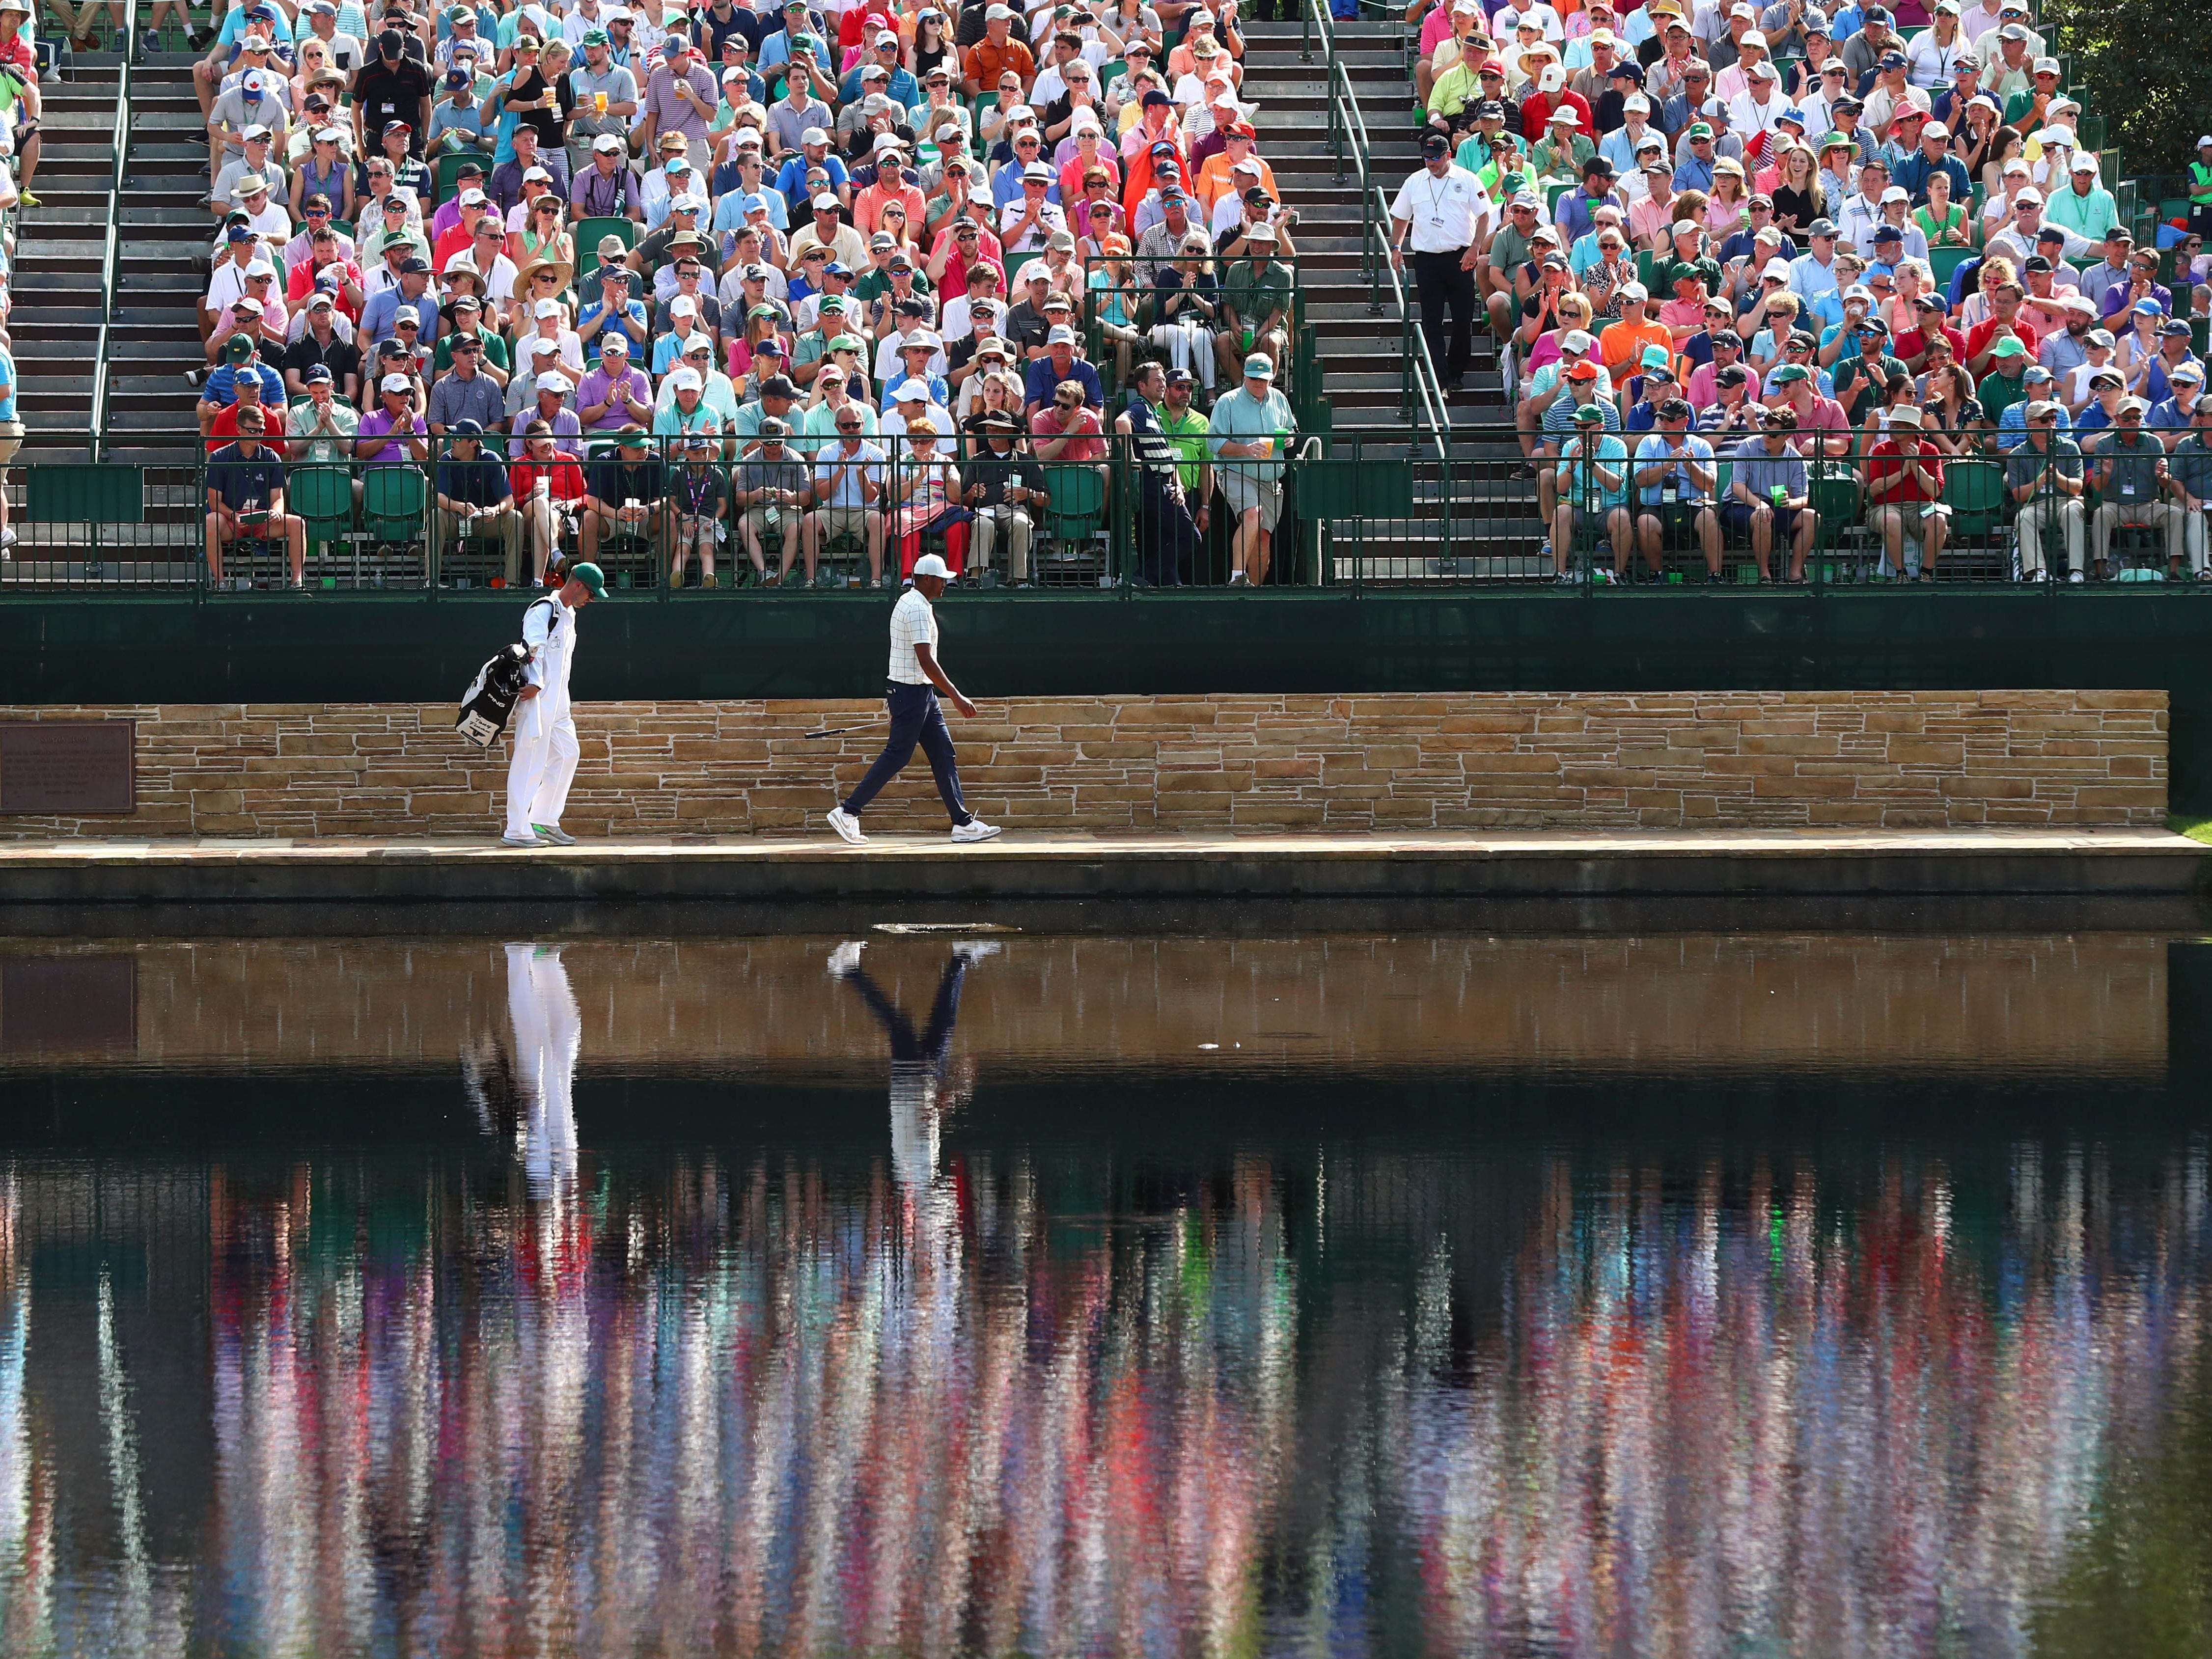 Tony Finau and caddie Gregory Bodine walk across the Sarazen Bridge on the 15th hole during the third round of the Masters.